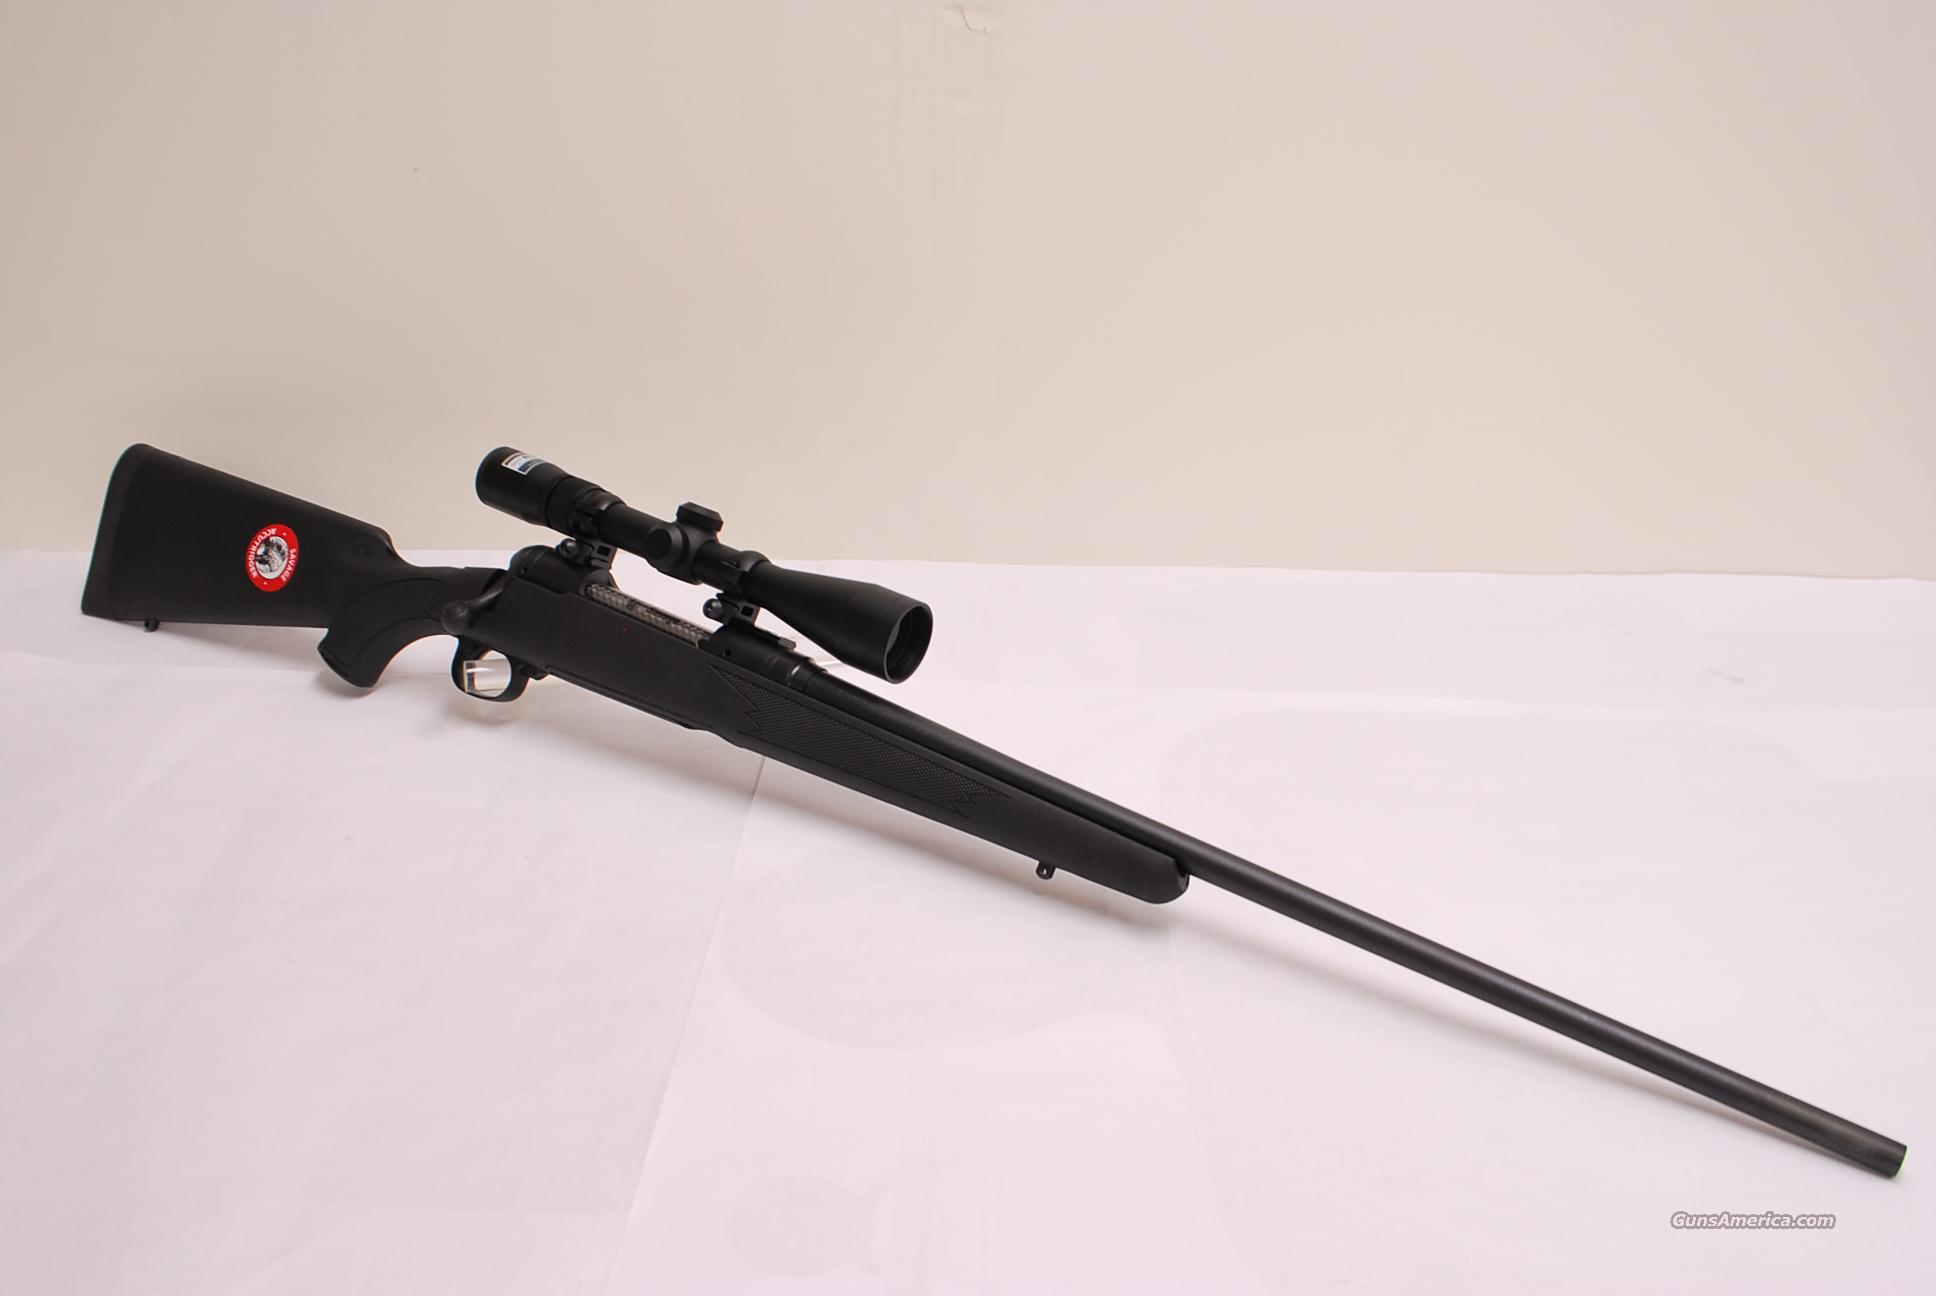 Savage 11 Trophy Hunter,  300 Win Mag .300 New 7.62  Guns > Rifles > Savage Rifles > Accutrigger Models > Sporting